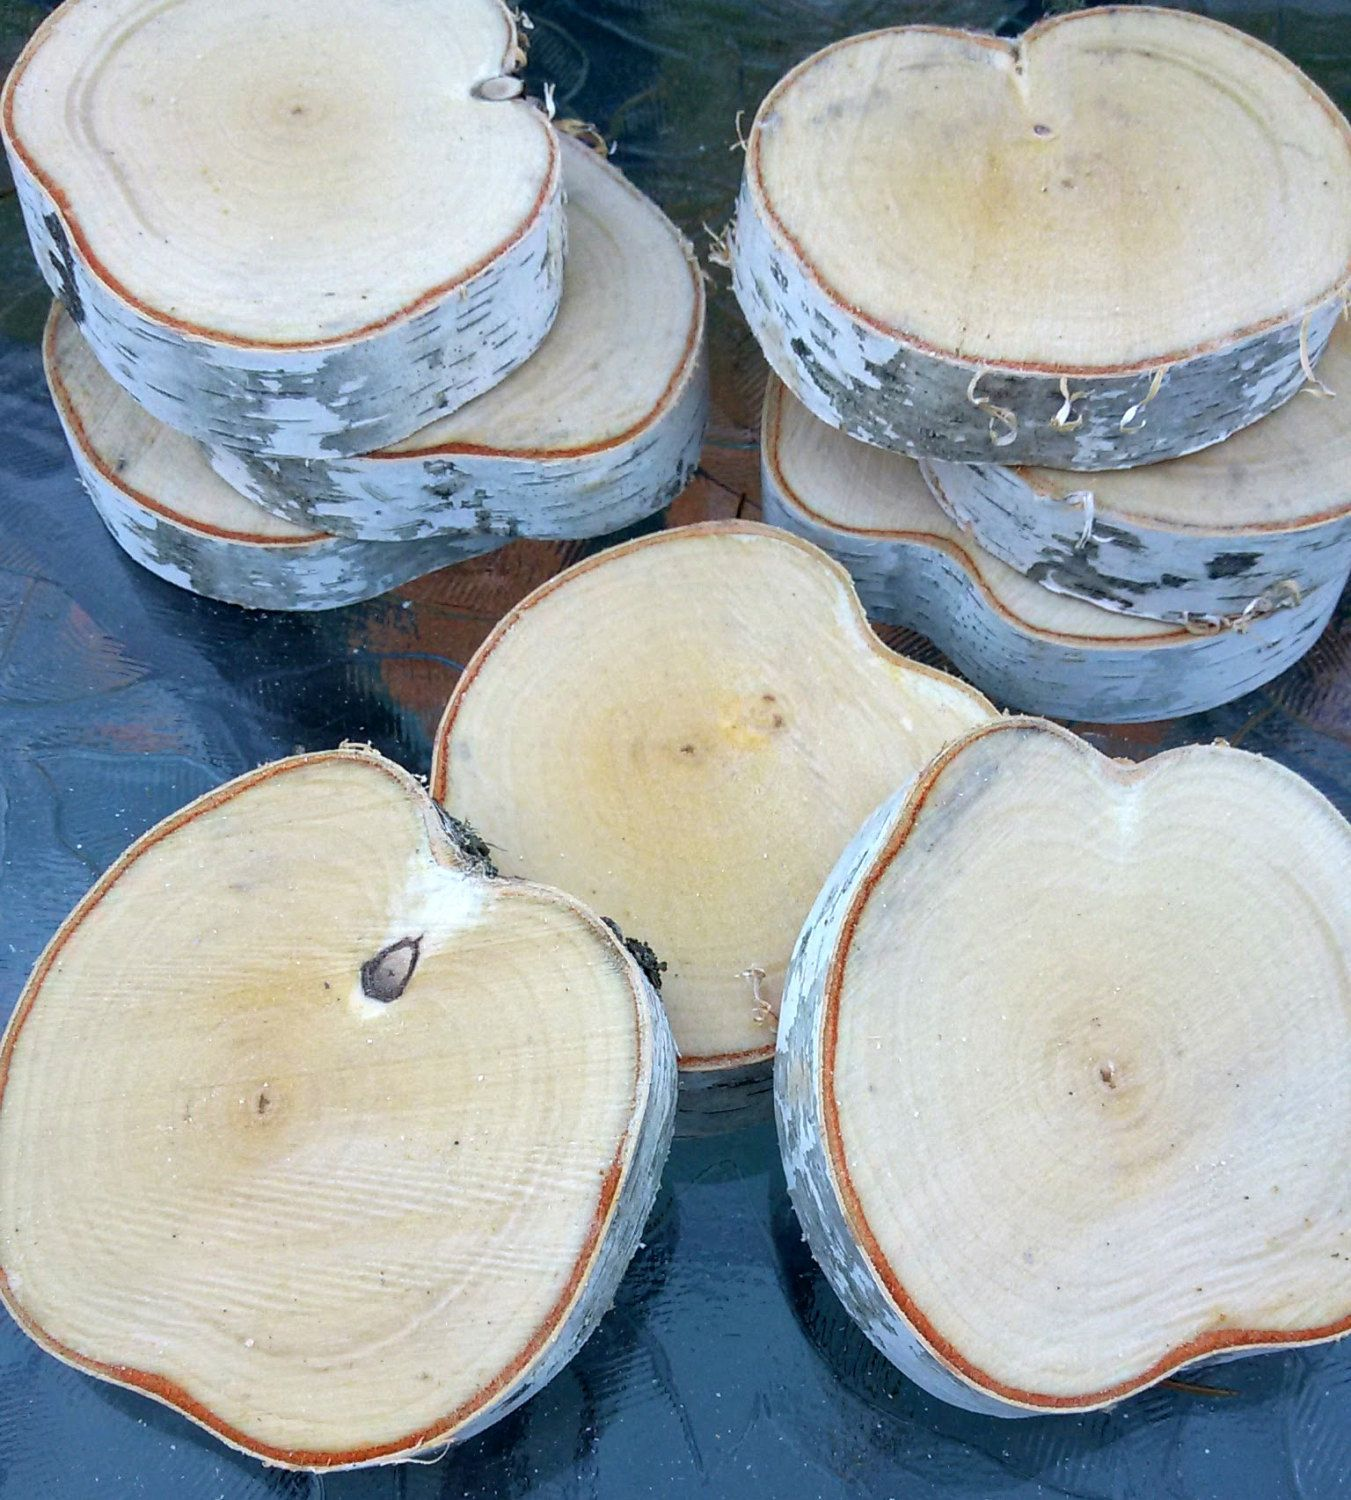 White Birch Slices 3 3 5 Diameter By 75 1 Thick Paper Birch Wood Cookies Rustic Party Wedding Deco Rustic Party Rustic Fireplace Mantle Wood Cookies